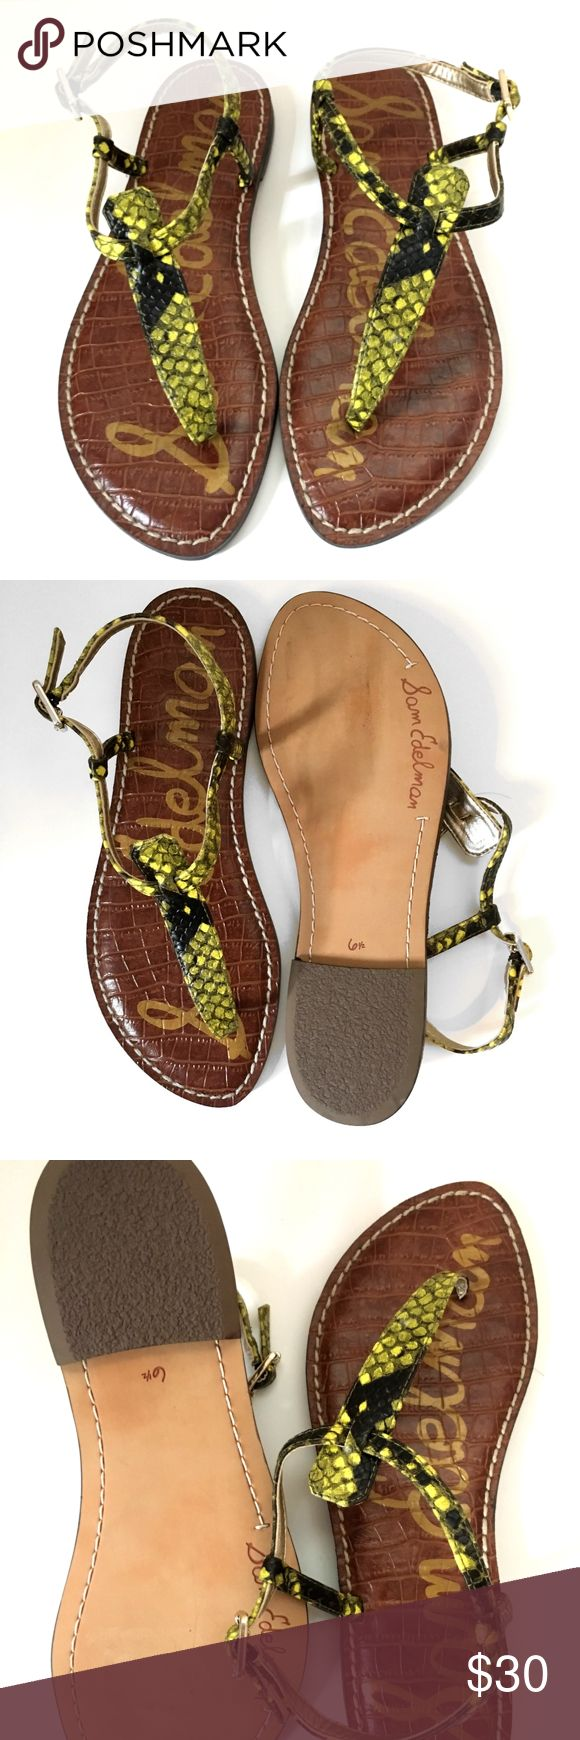 Sam Edelman 'Gigi' Sandal Python print 'Gigi' Sam Edelman Sandal in neon yellow and black Never been worn! Classic thong sandal I have owned so many of these sandals over the years. They last forever, are SO comfortable and go with everything!  OFFERS ARE WELCOME! Sam Edelman Shoes Sandals